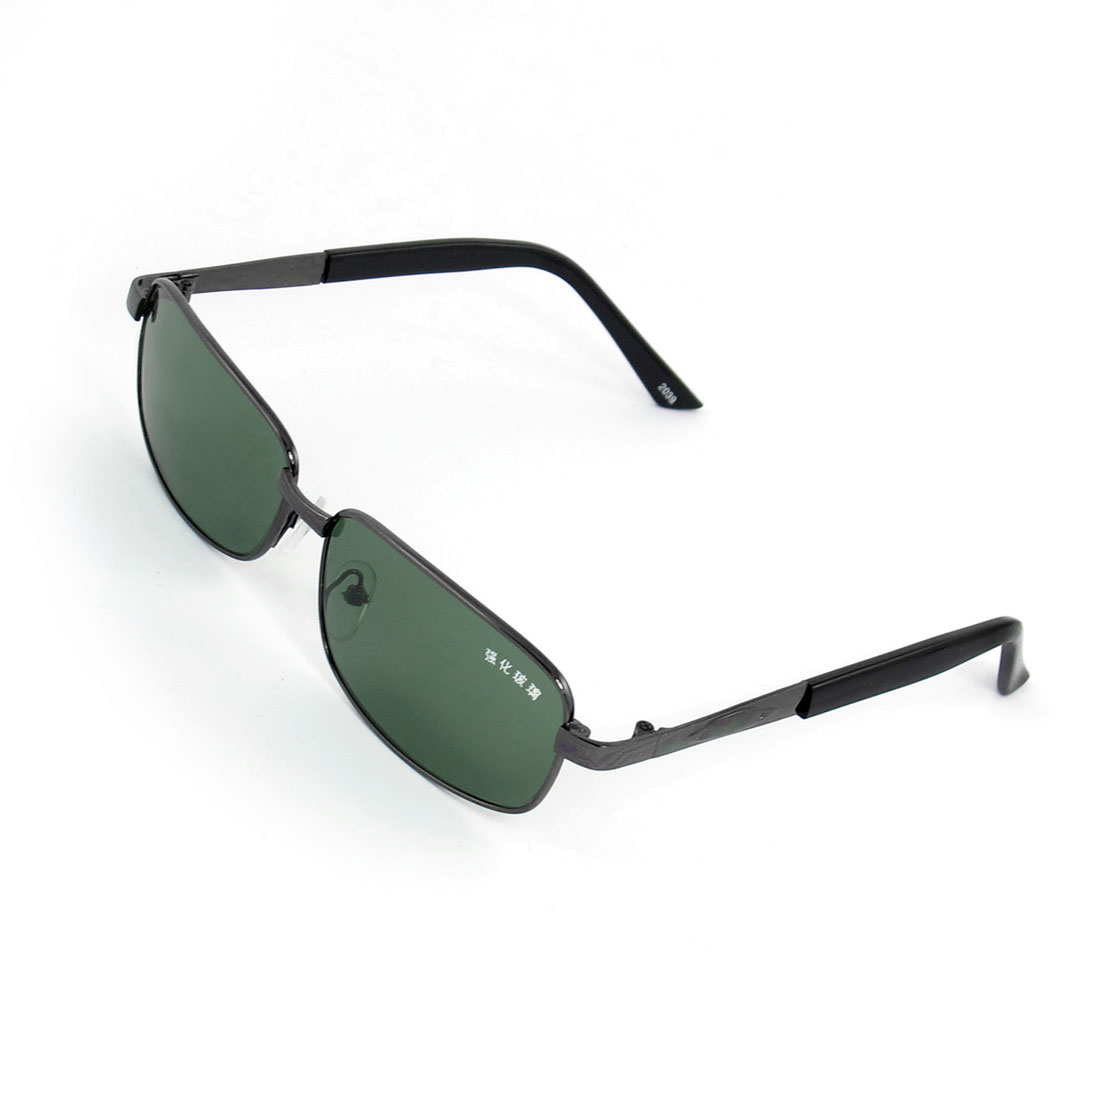 Outside Traveling Full Frame Metal Arm Green Lens Sunglasses Glasses for Lady